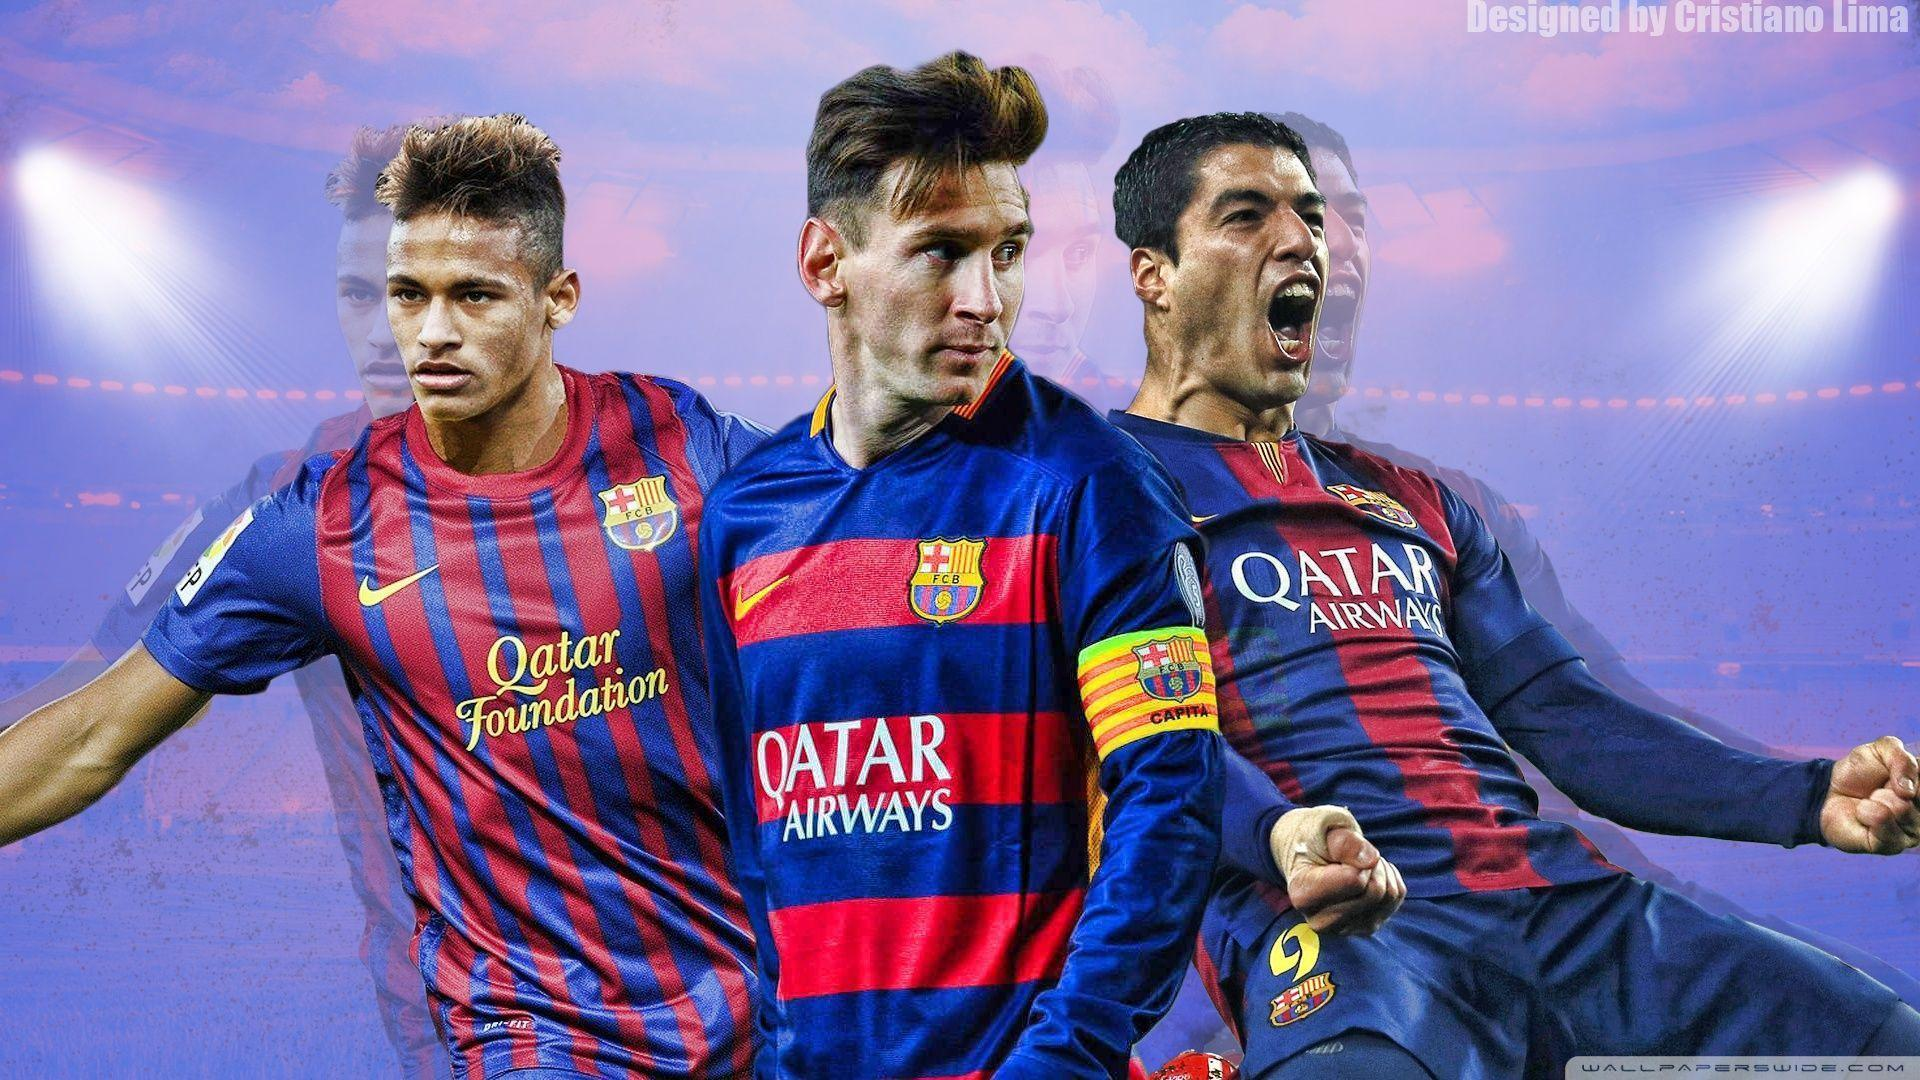 Neymar And Messi Wallpapers